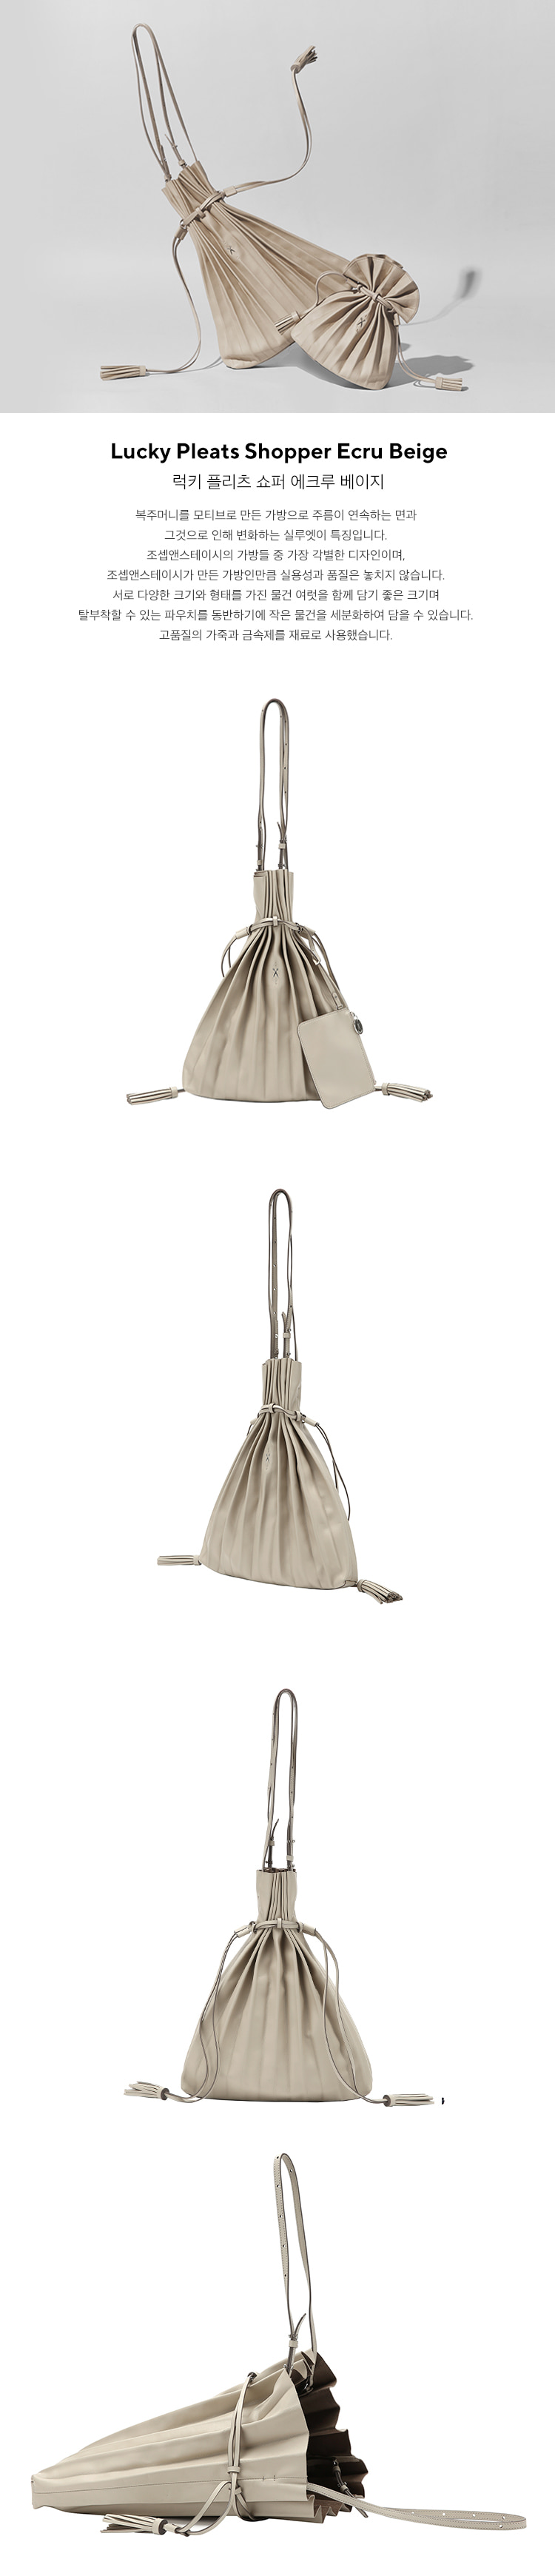 조셉앤스테이시(JOSEPH&STACEY) Lucky Pleats Shopper Ecru Beige